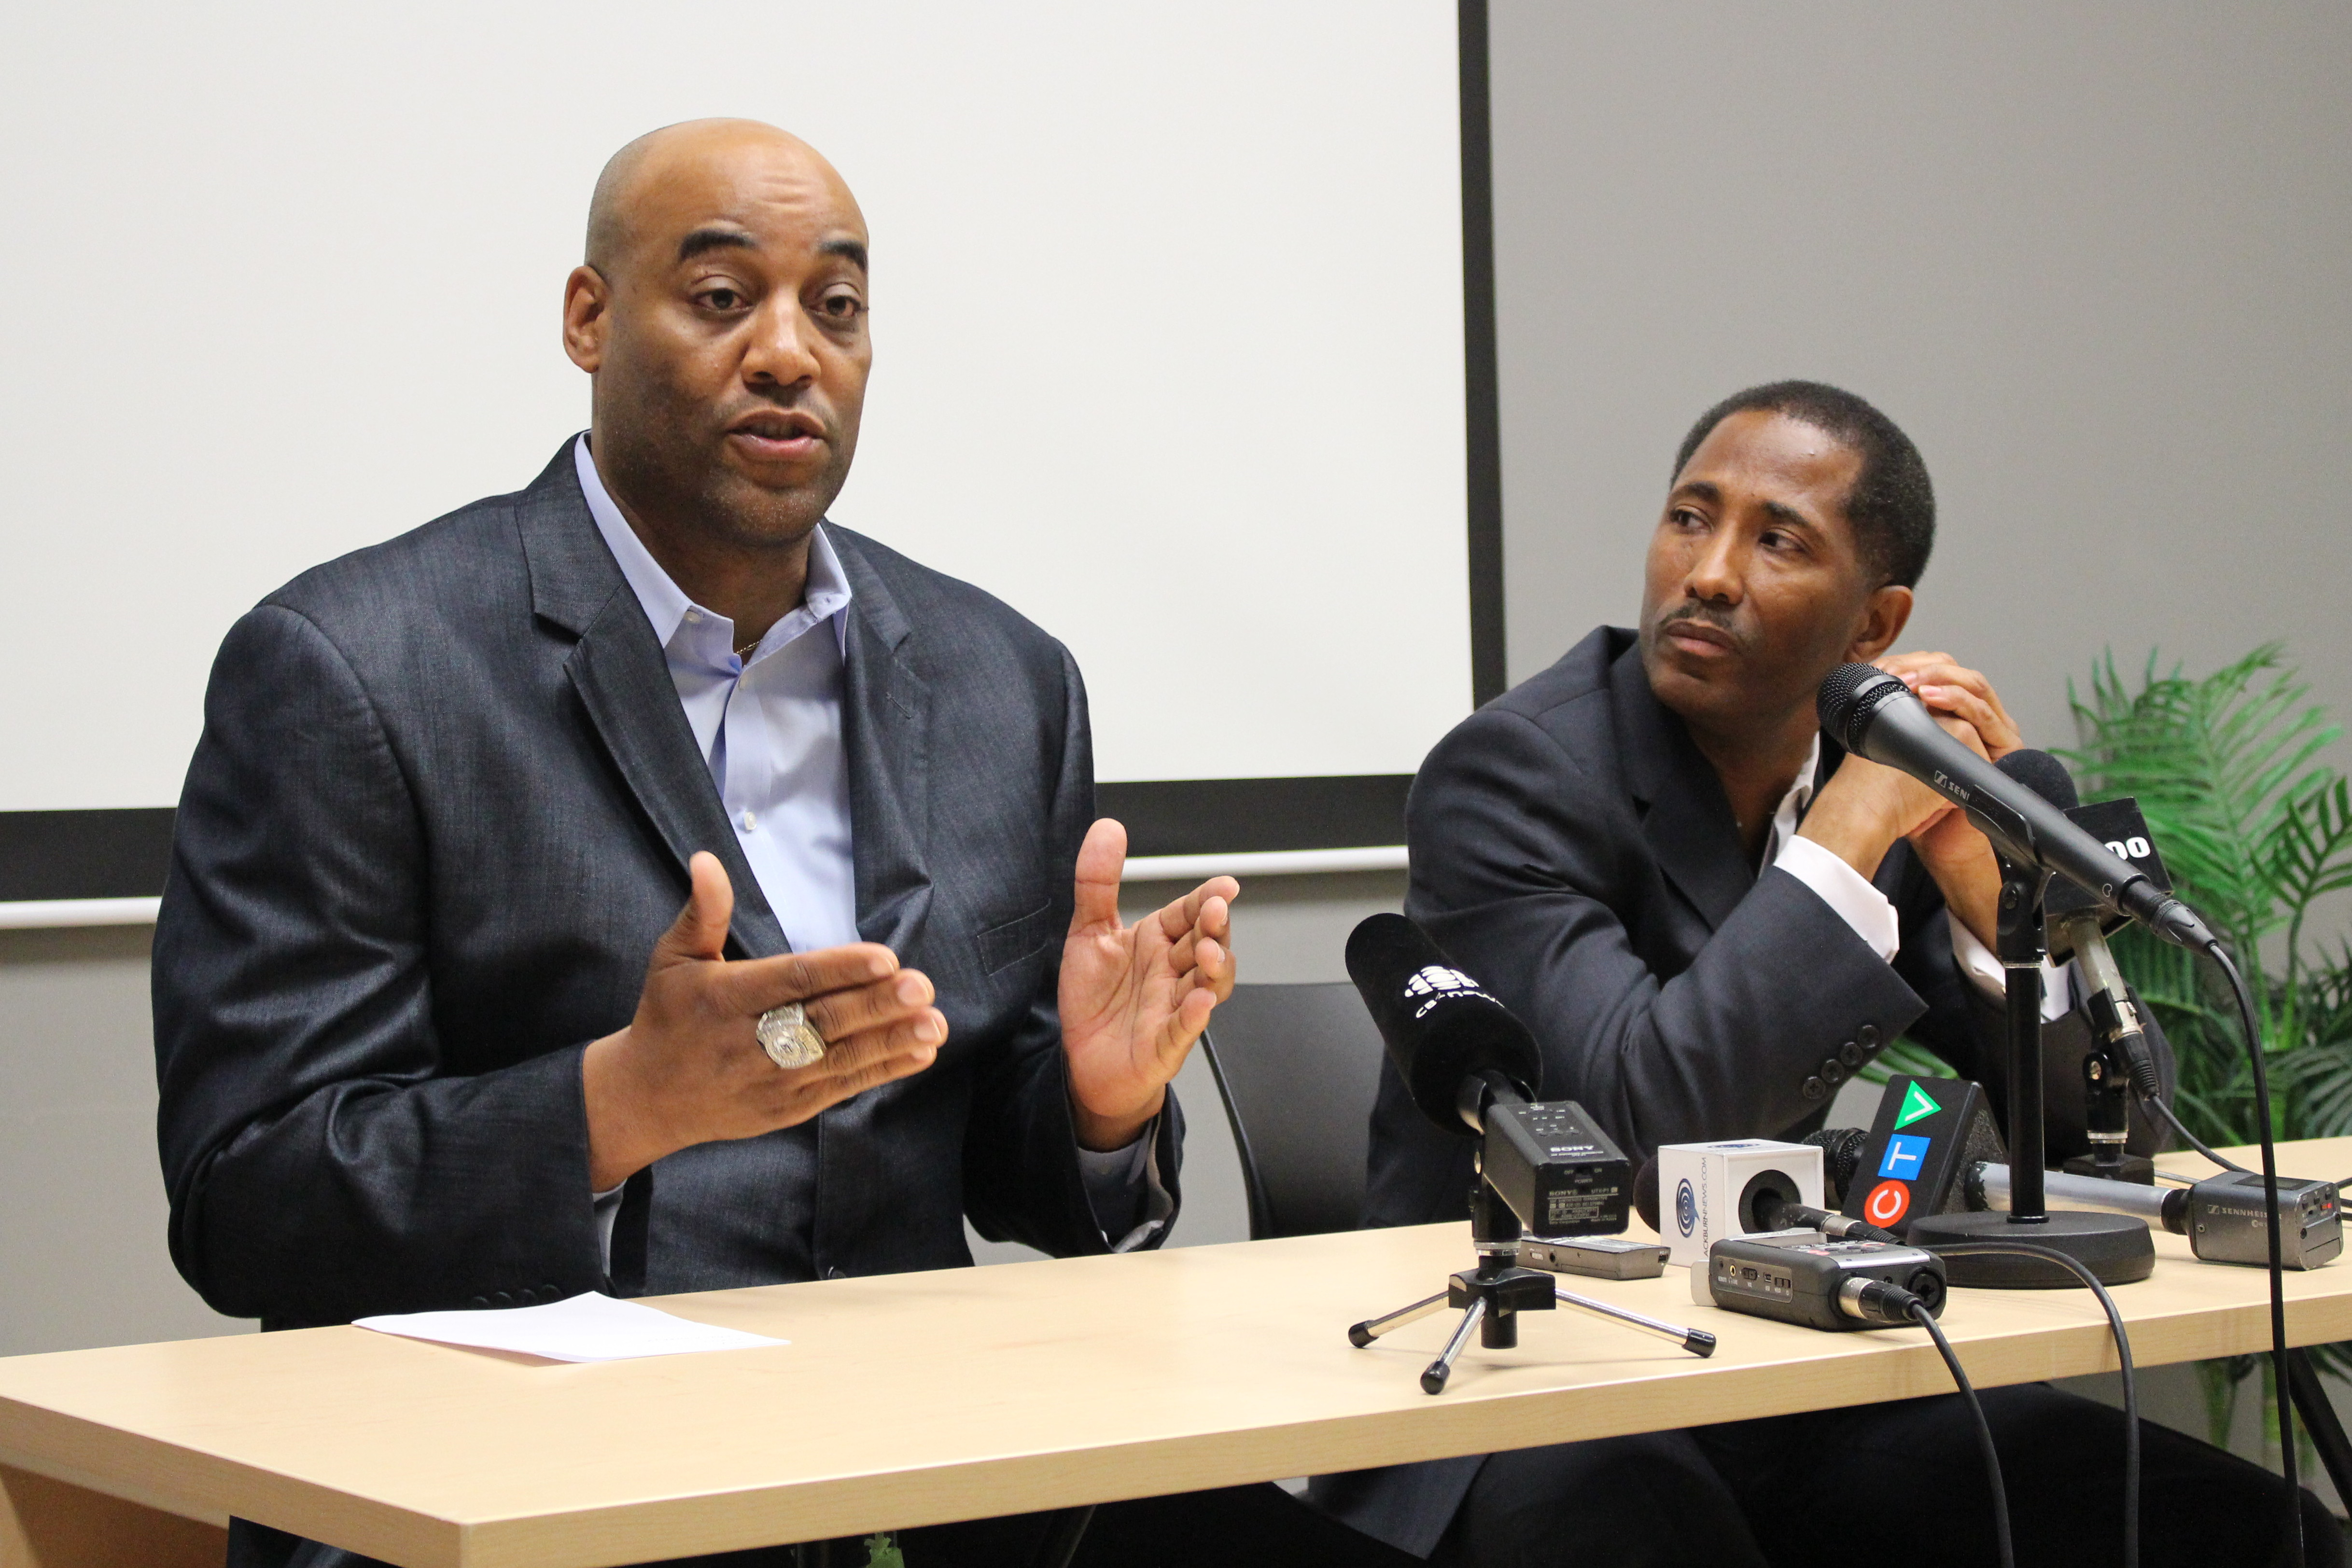 Windsor Express Head Coach Bill Jones (left) and Owner Dartis Willis speak with media at Windsor's Downtown Business Accelerator, May 8, 2015. (Photo by Mike Vlasveld)